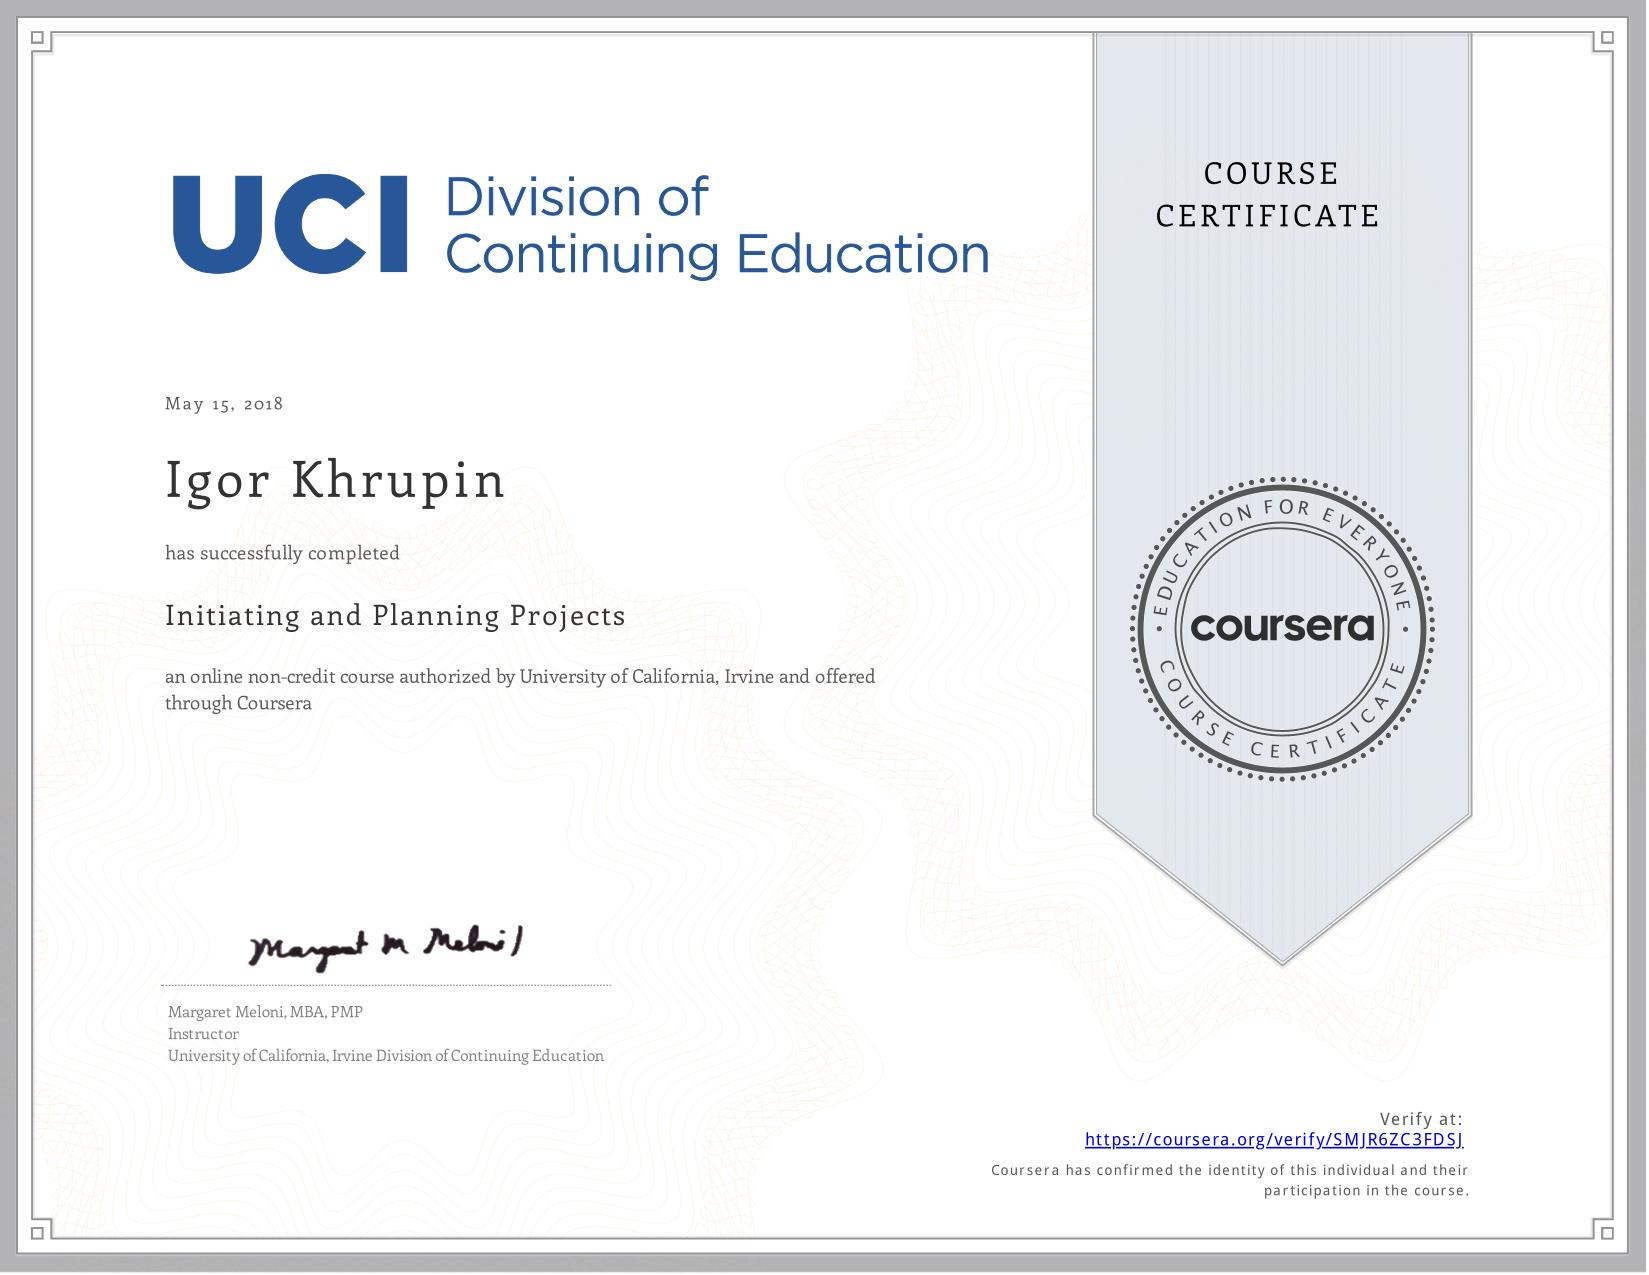 View certificate for Igor Khrupin, Initiating and Planning Projects, an online non-credit course authorized by University of California, Irvine and offered through Coursera